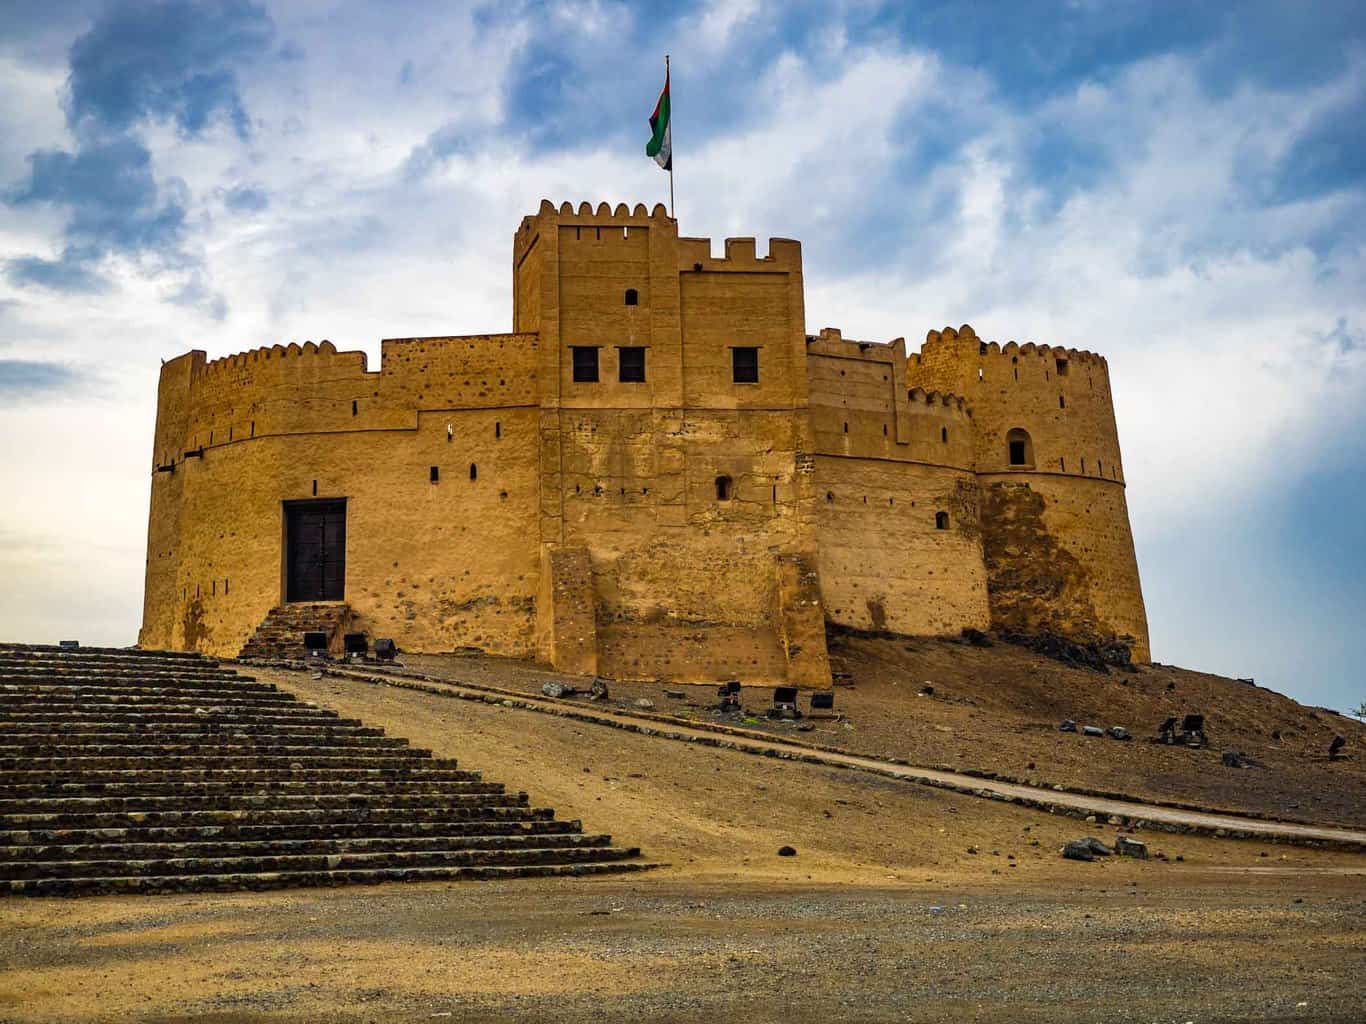 Fujairah Fort in UAE